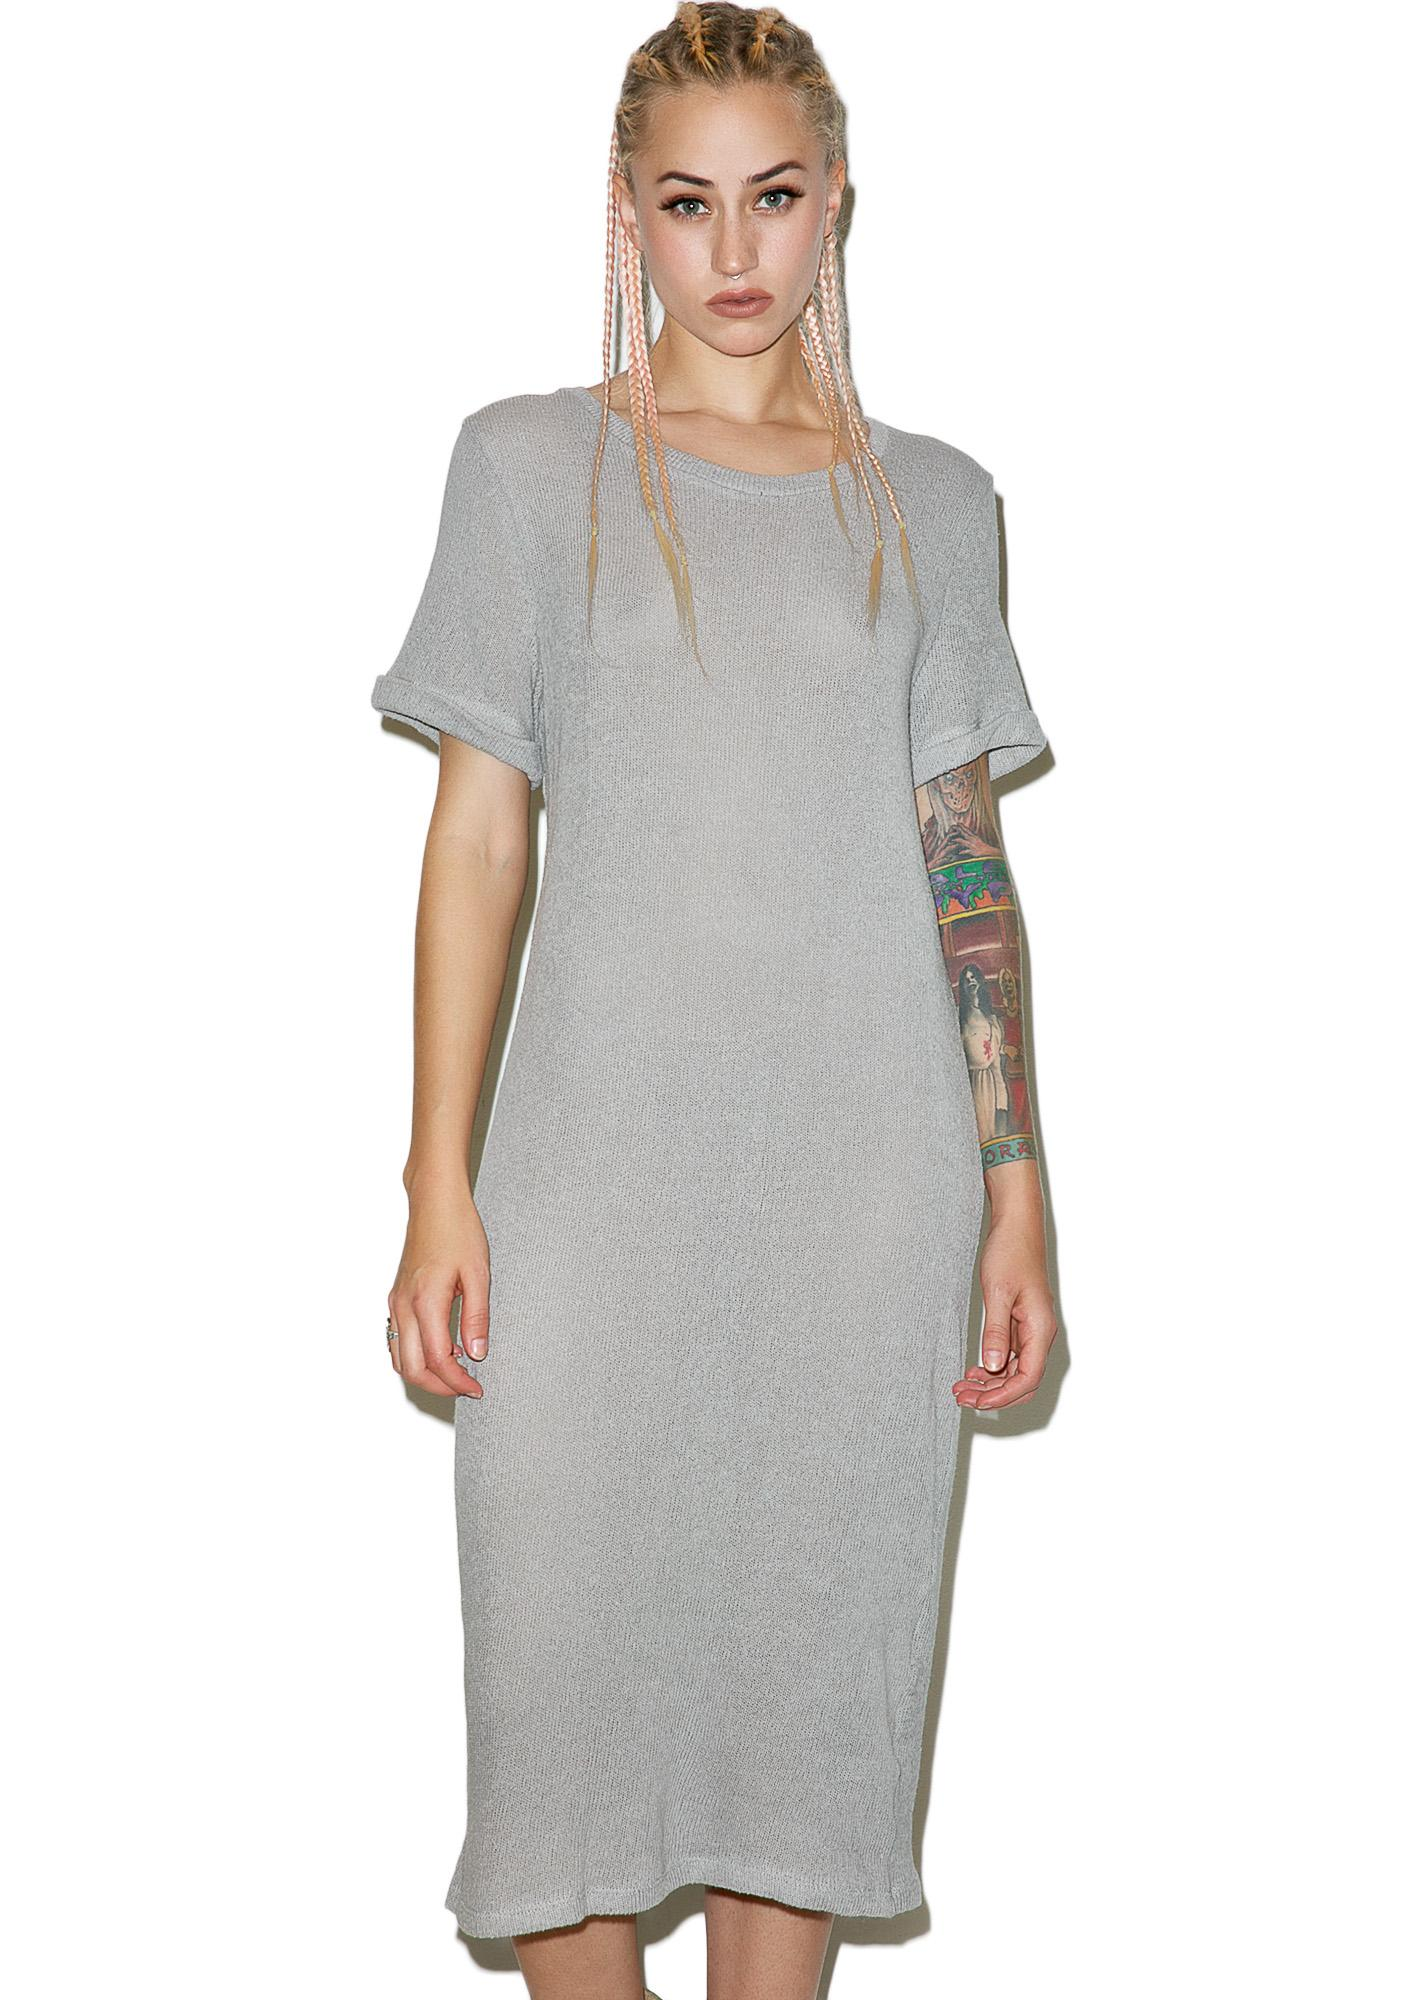 Moolah Midi Dress